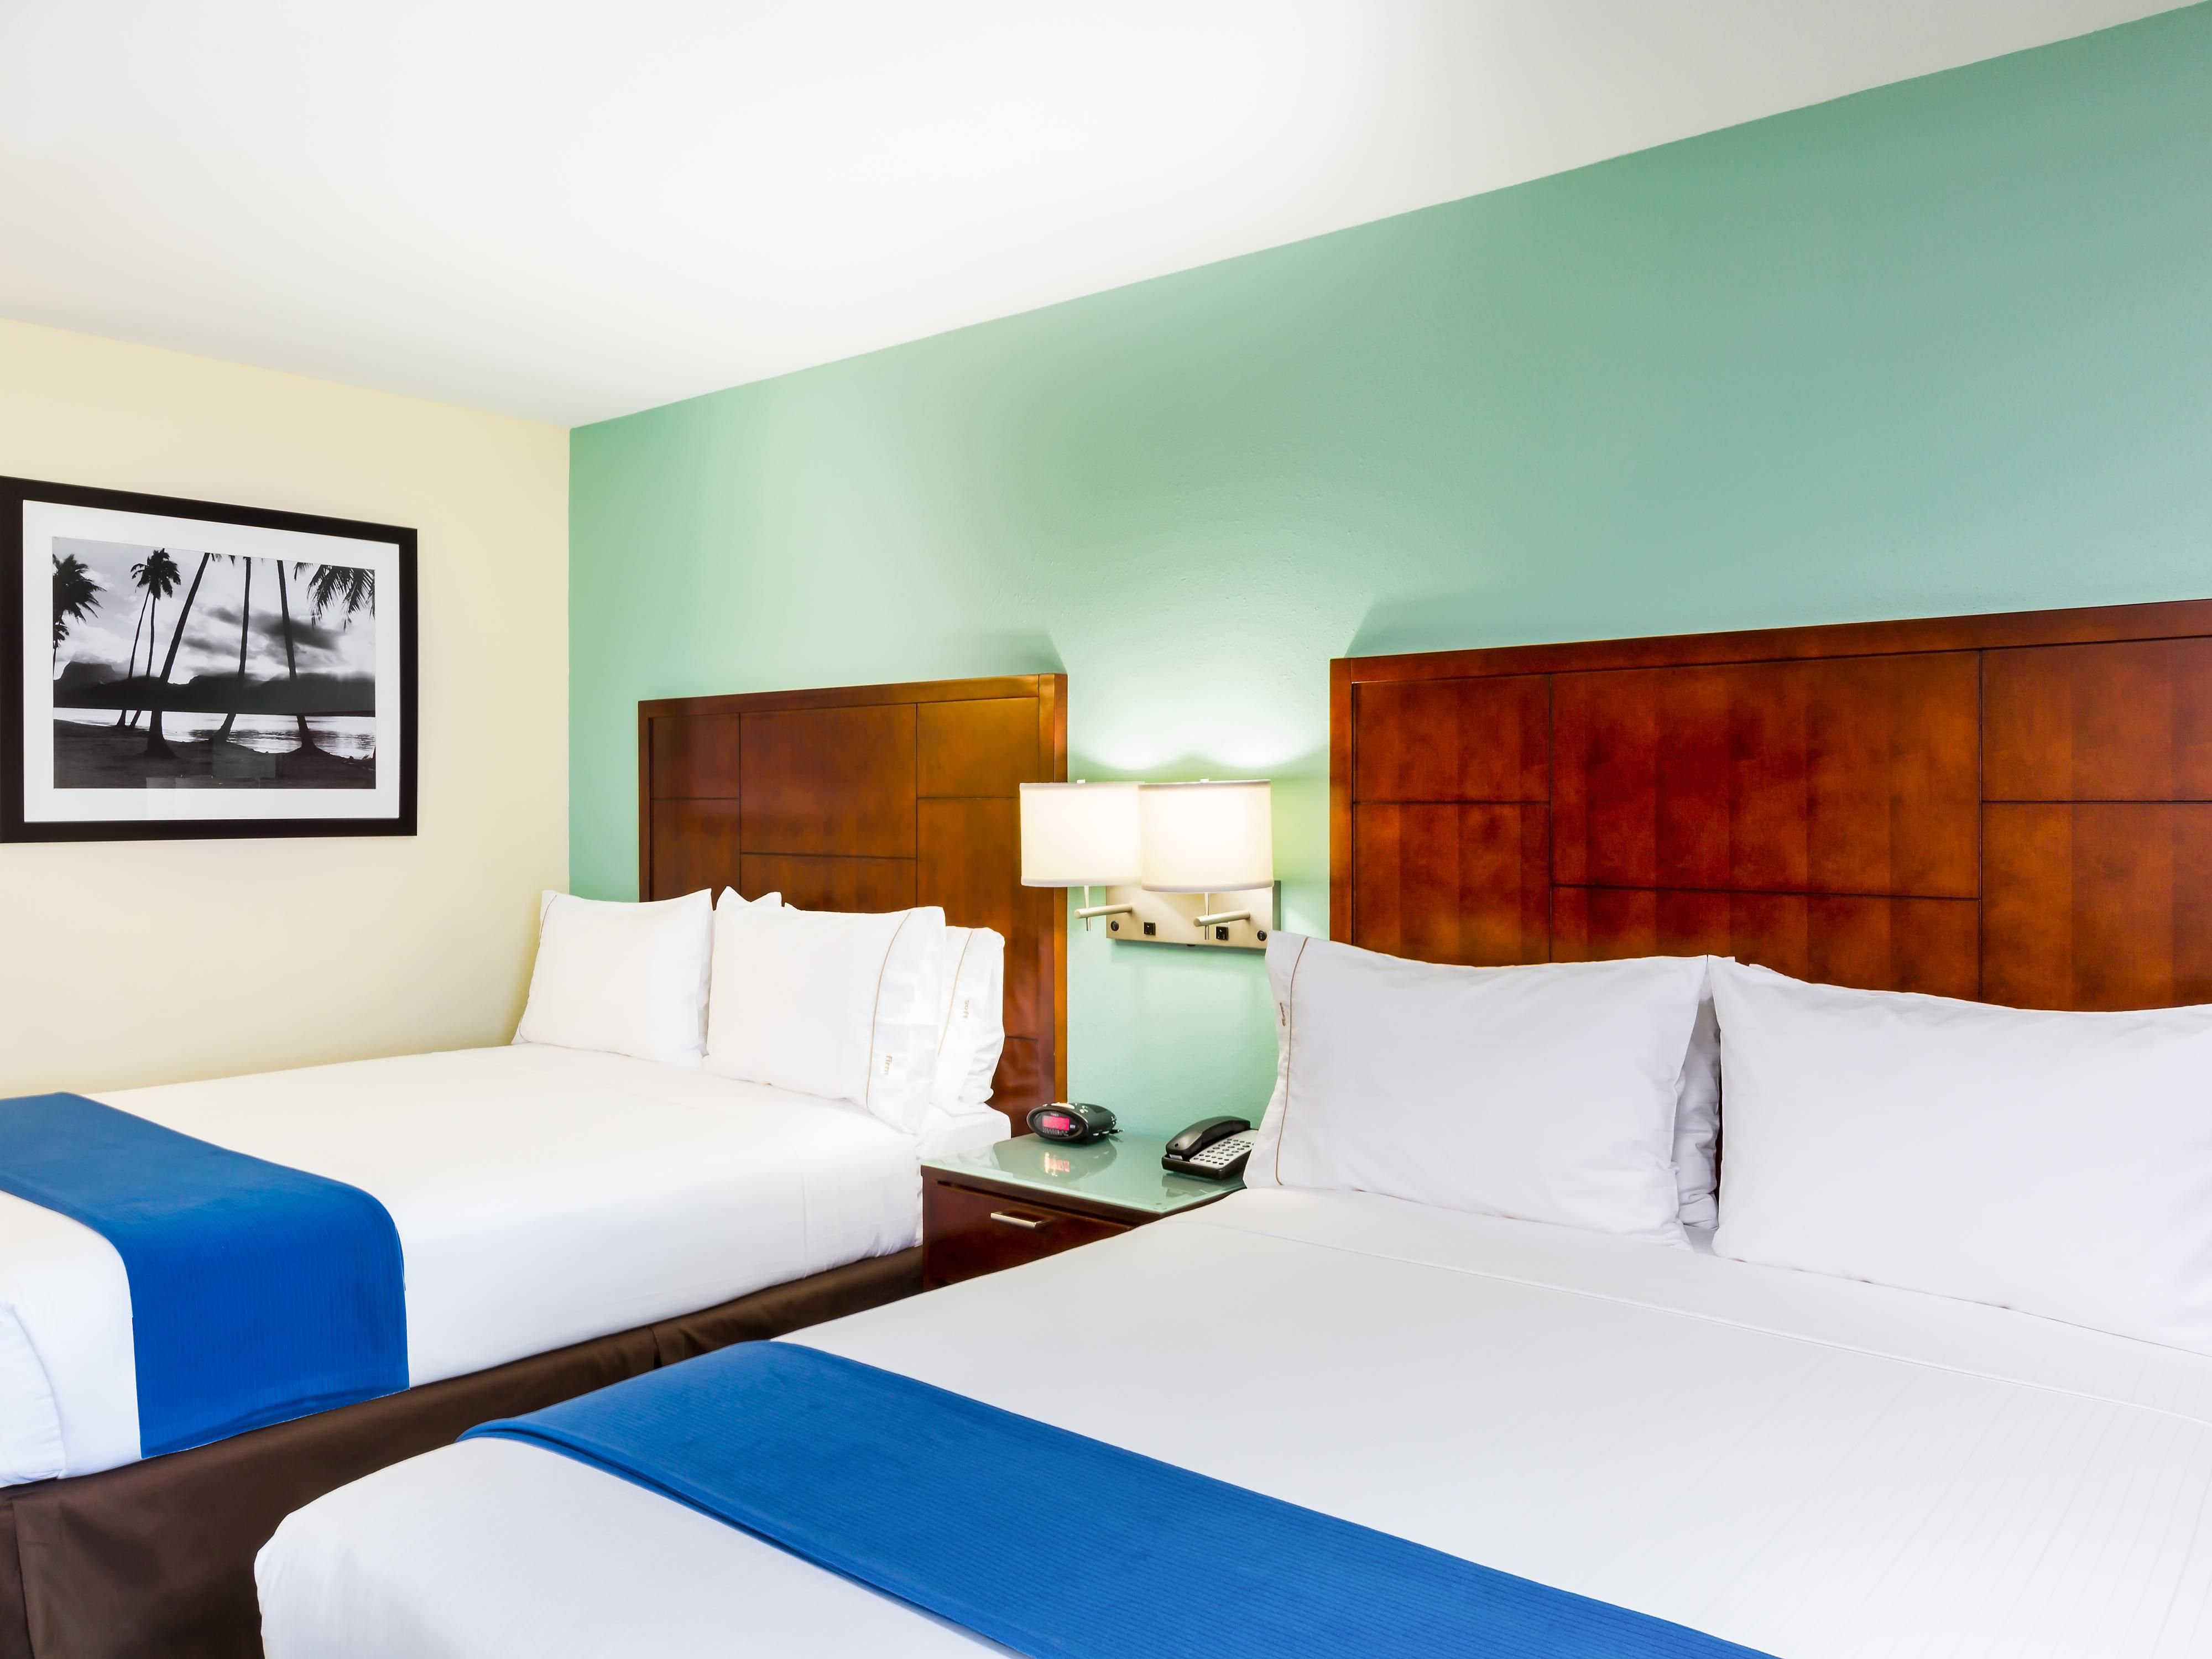 Double Bed Guest Rooms are ideal for family or business travelers.